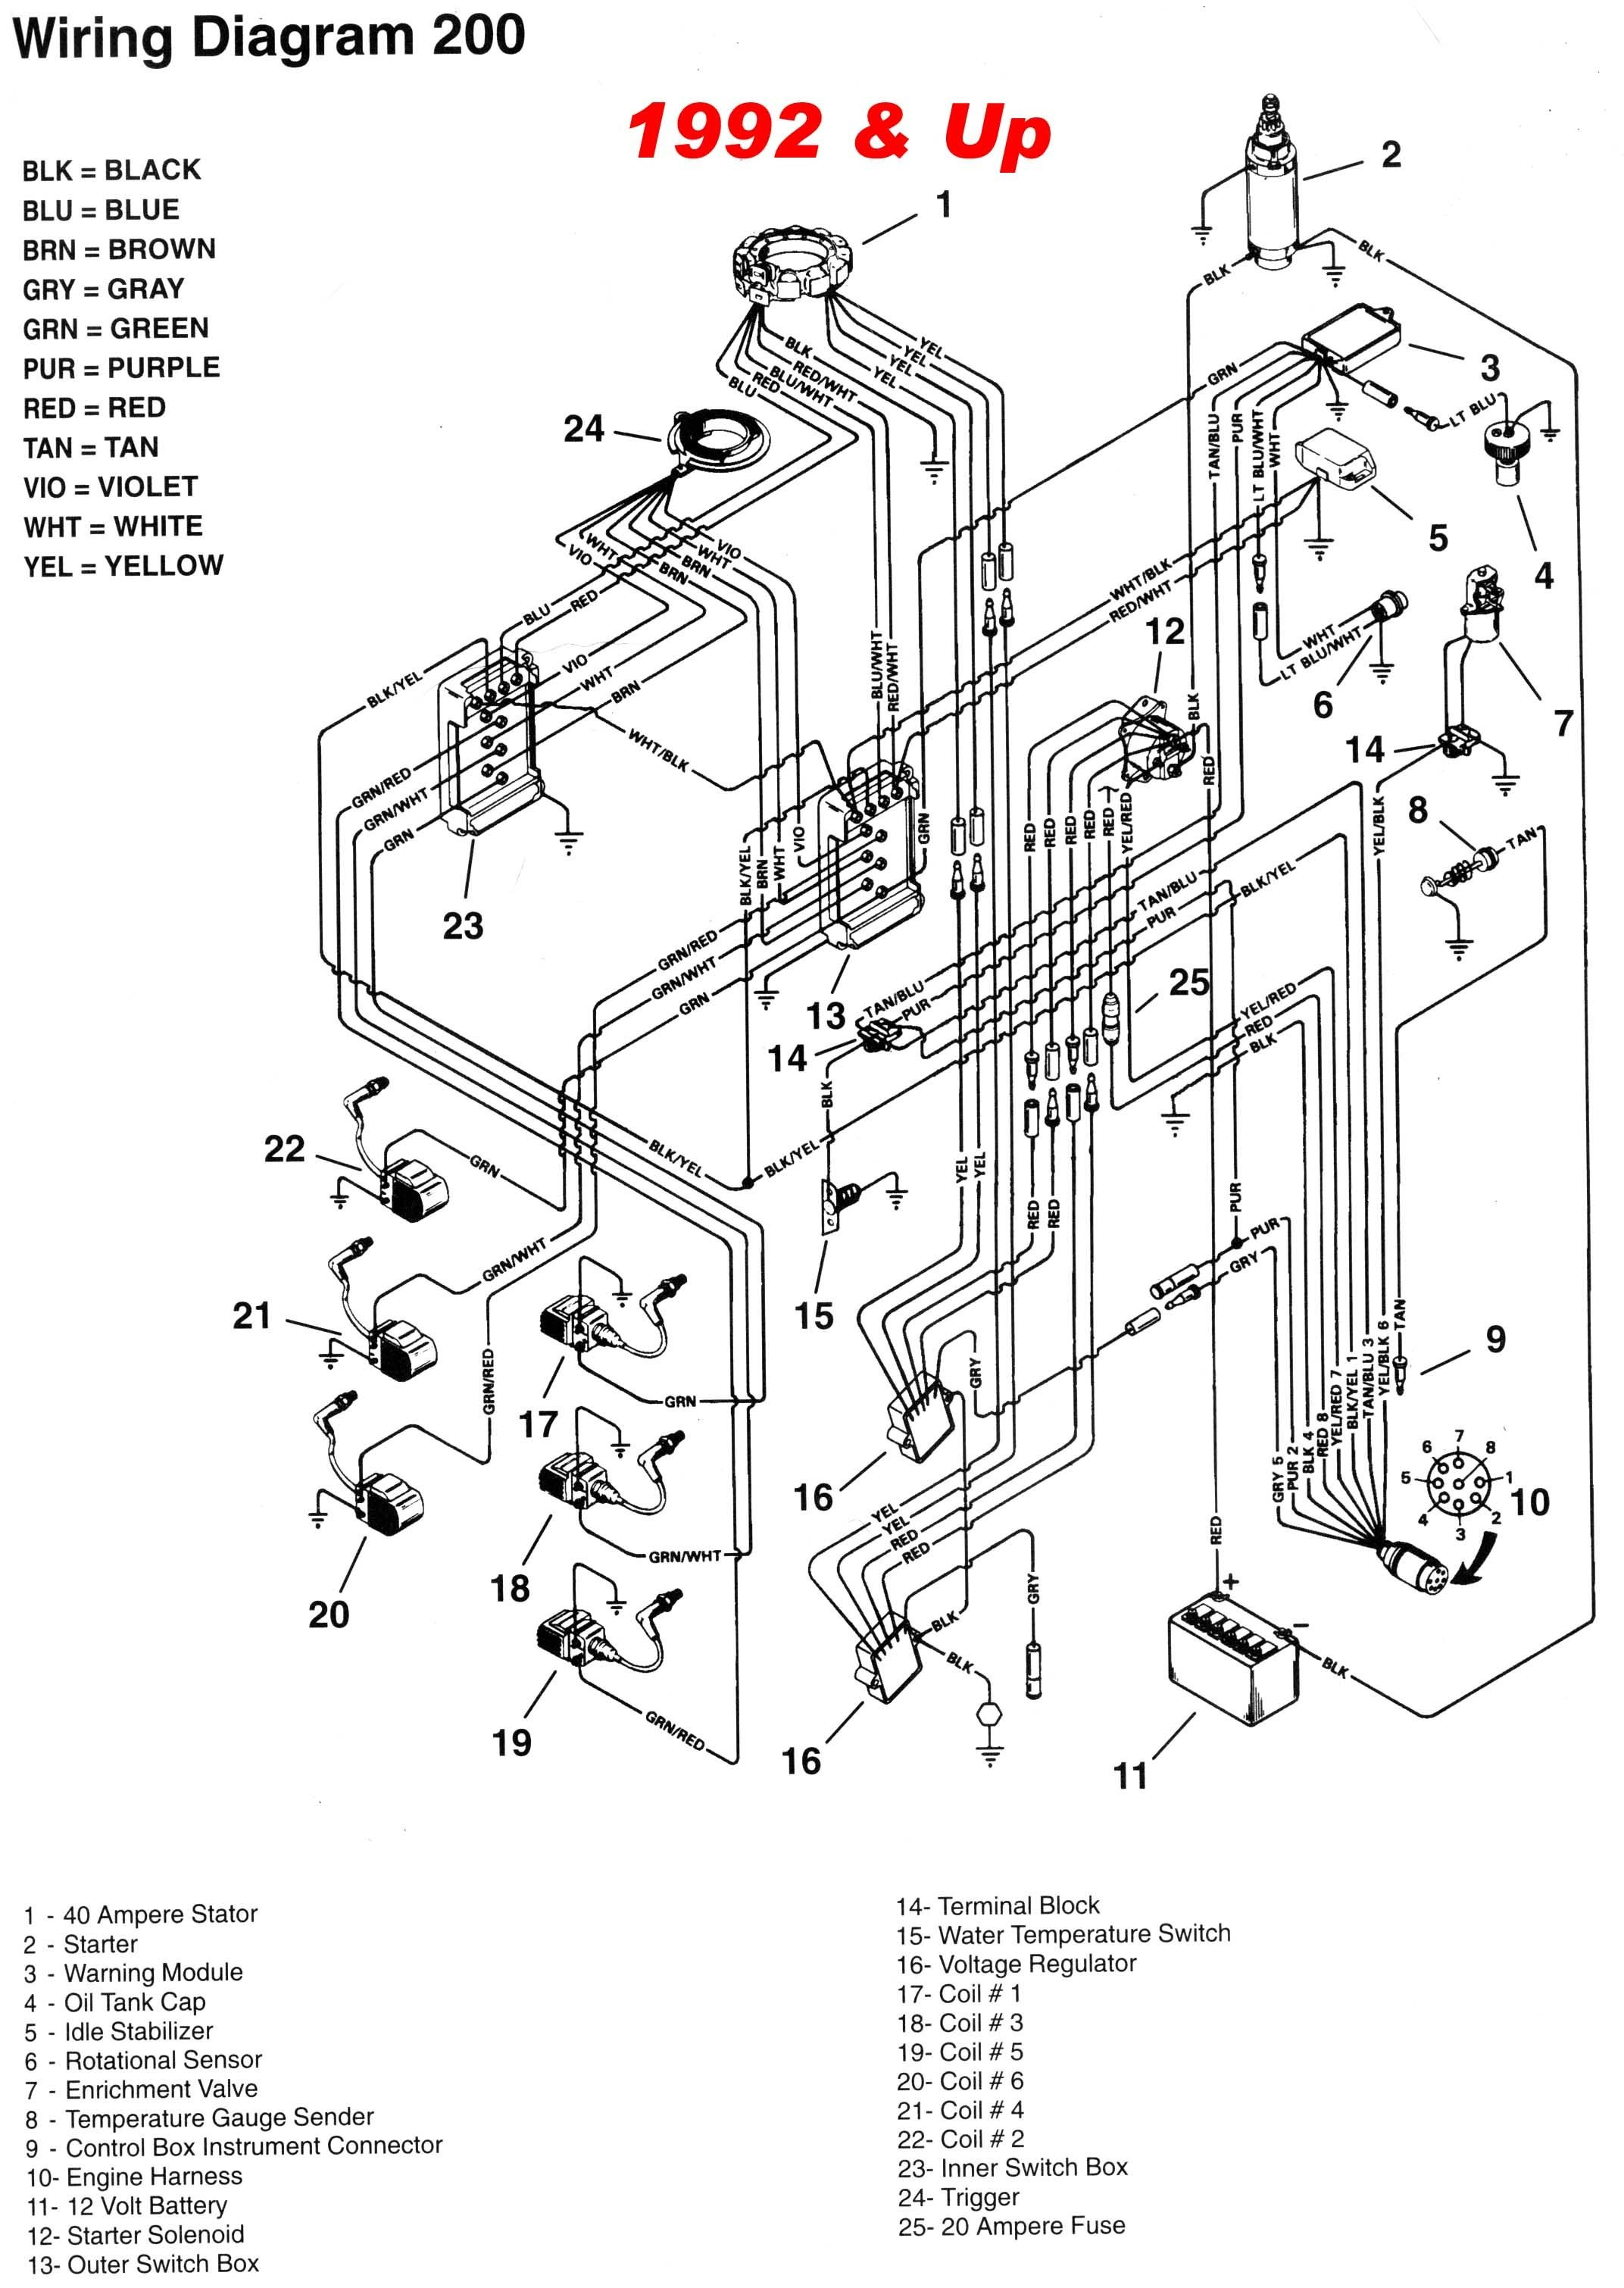 Mercury 115 Hp Wiring 51 Mercury Wiring Diagram Of Mercury 115 Hp Wiring